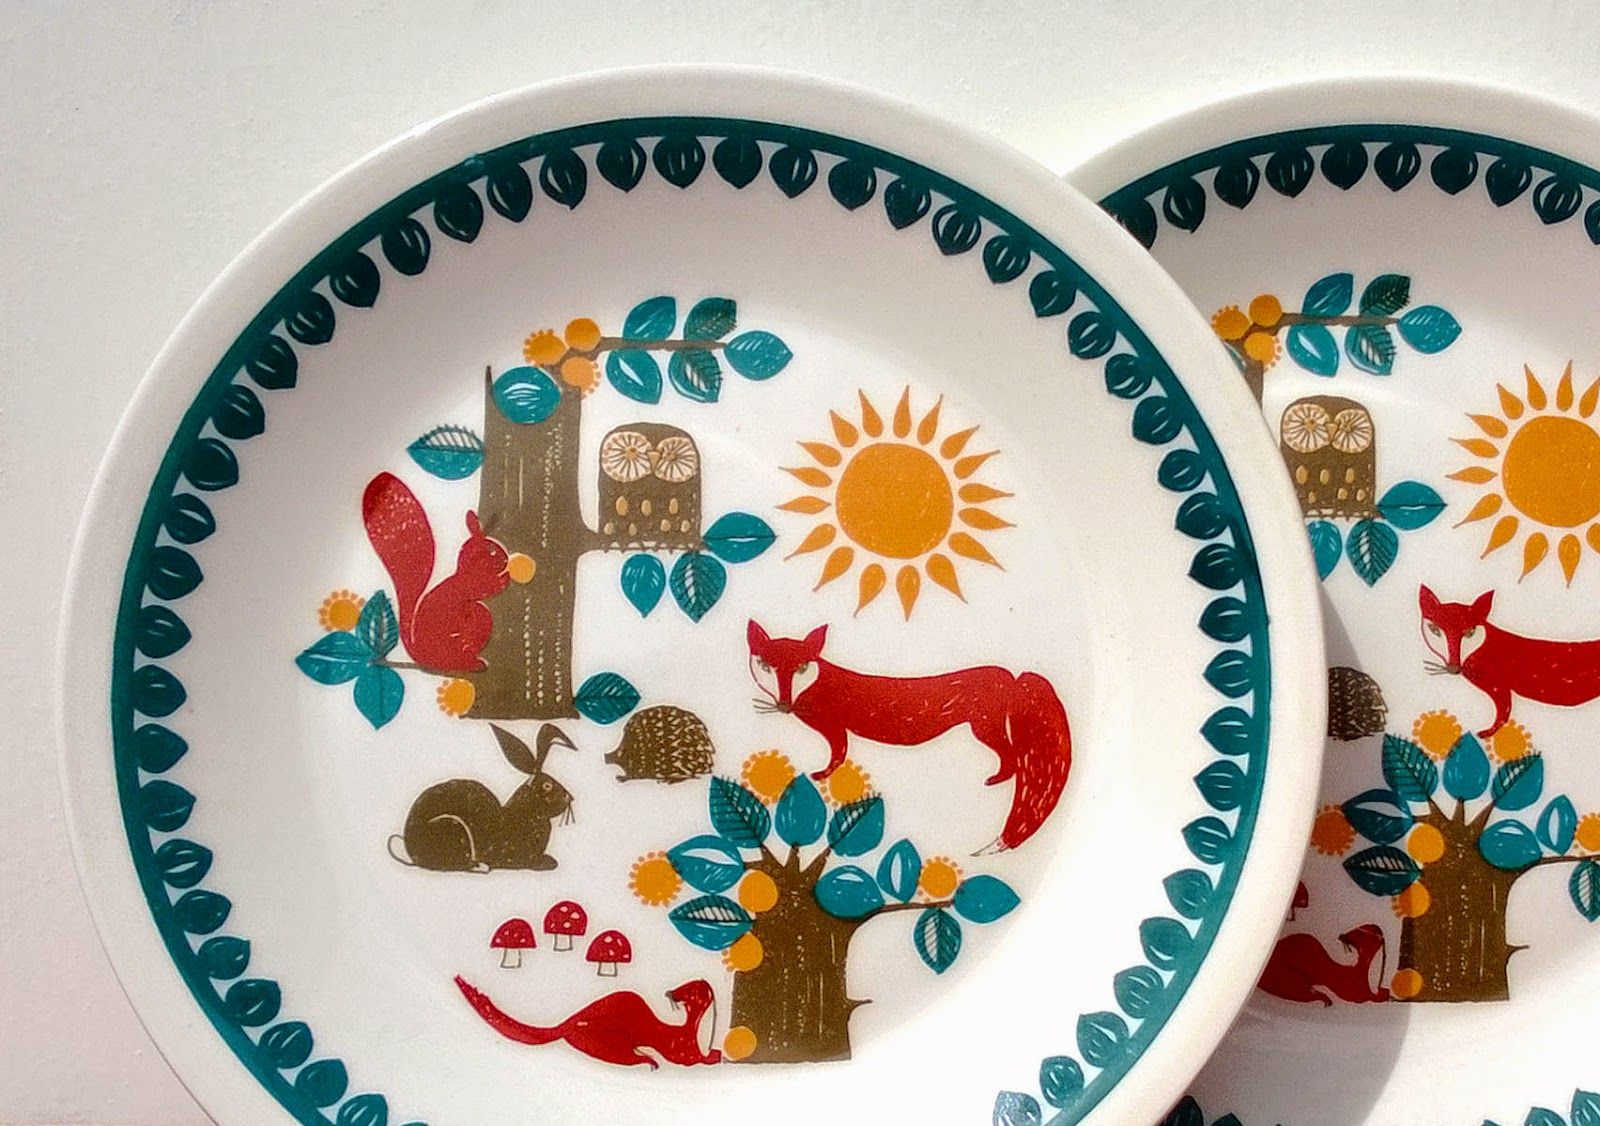 VINTAGE CHILDREN'S TABLEWARE FROM NORWAY, FIGGJO FLINT